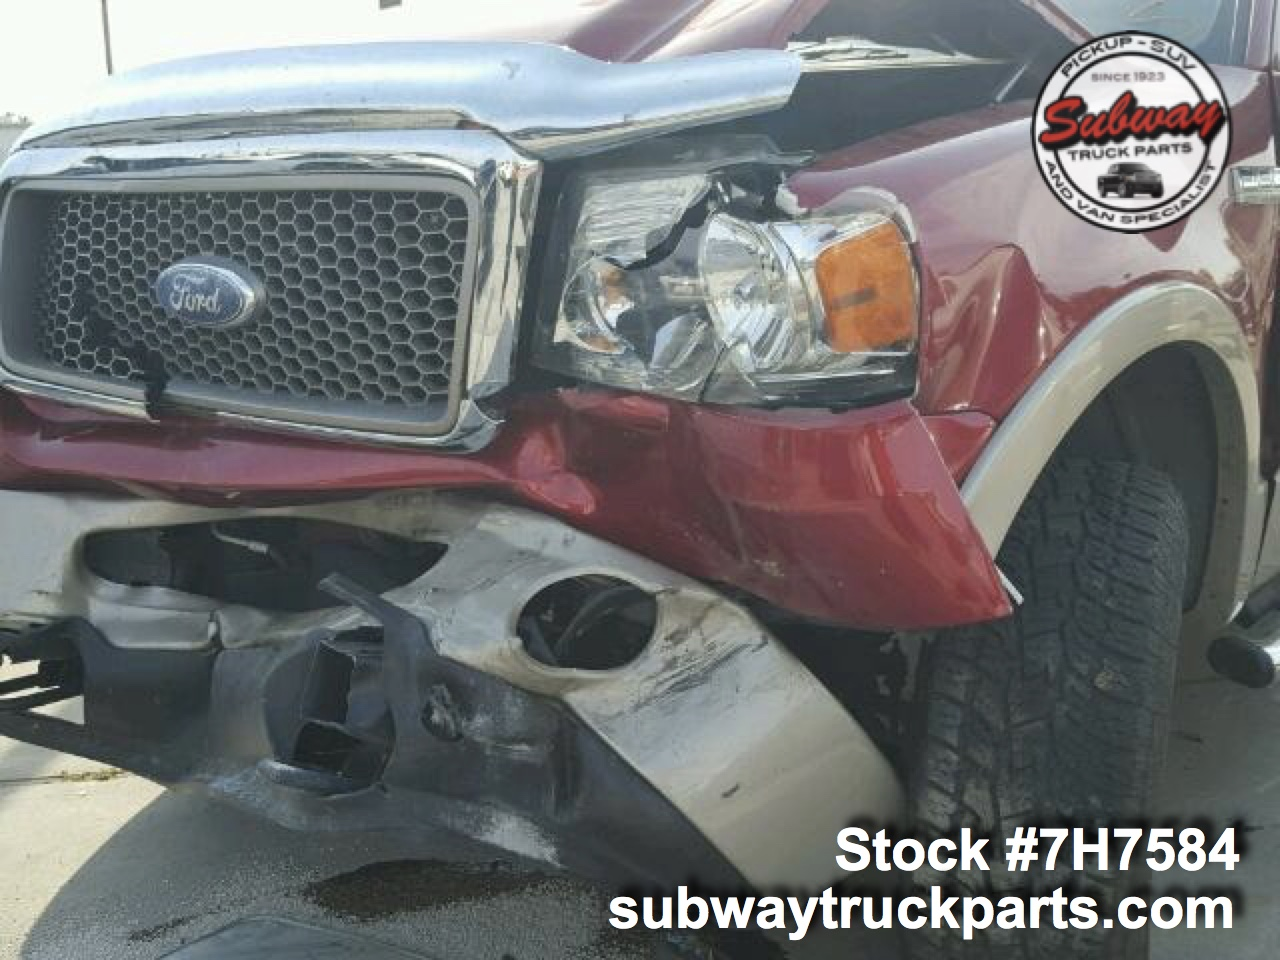 Used Parts 2007 Ford F150 Lariat 54l 4x4 Subway Truck Inc Starter Location 1 10